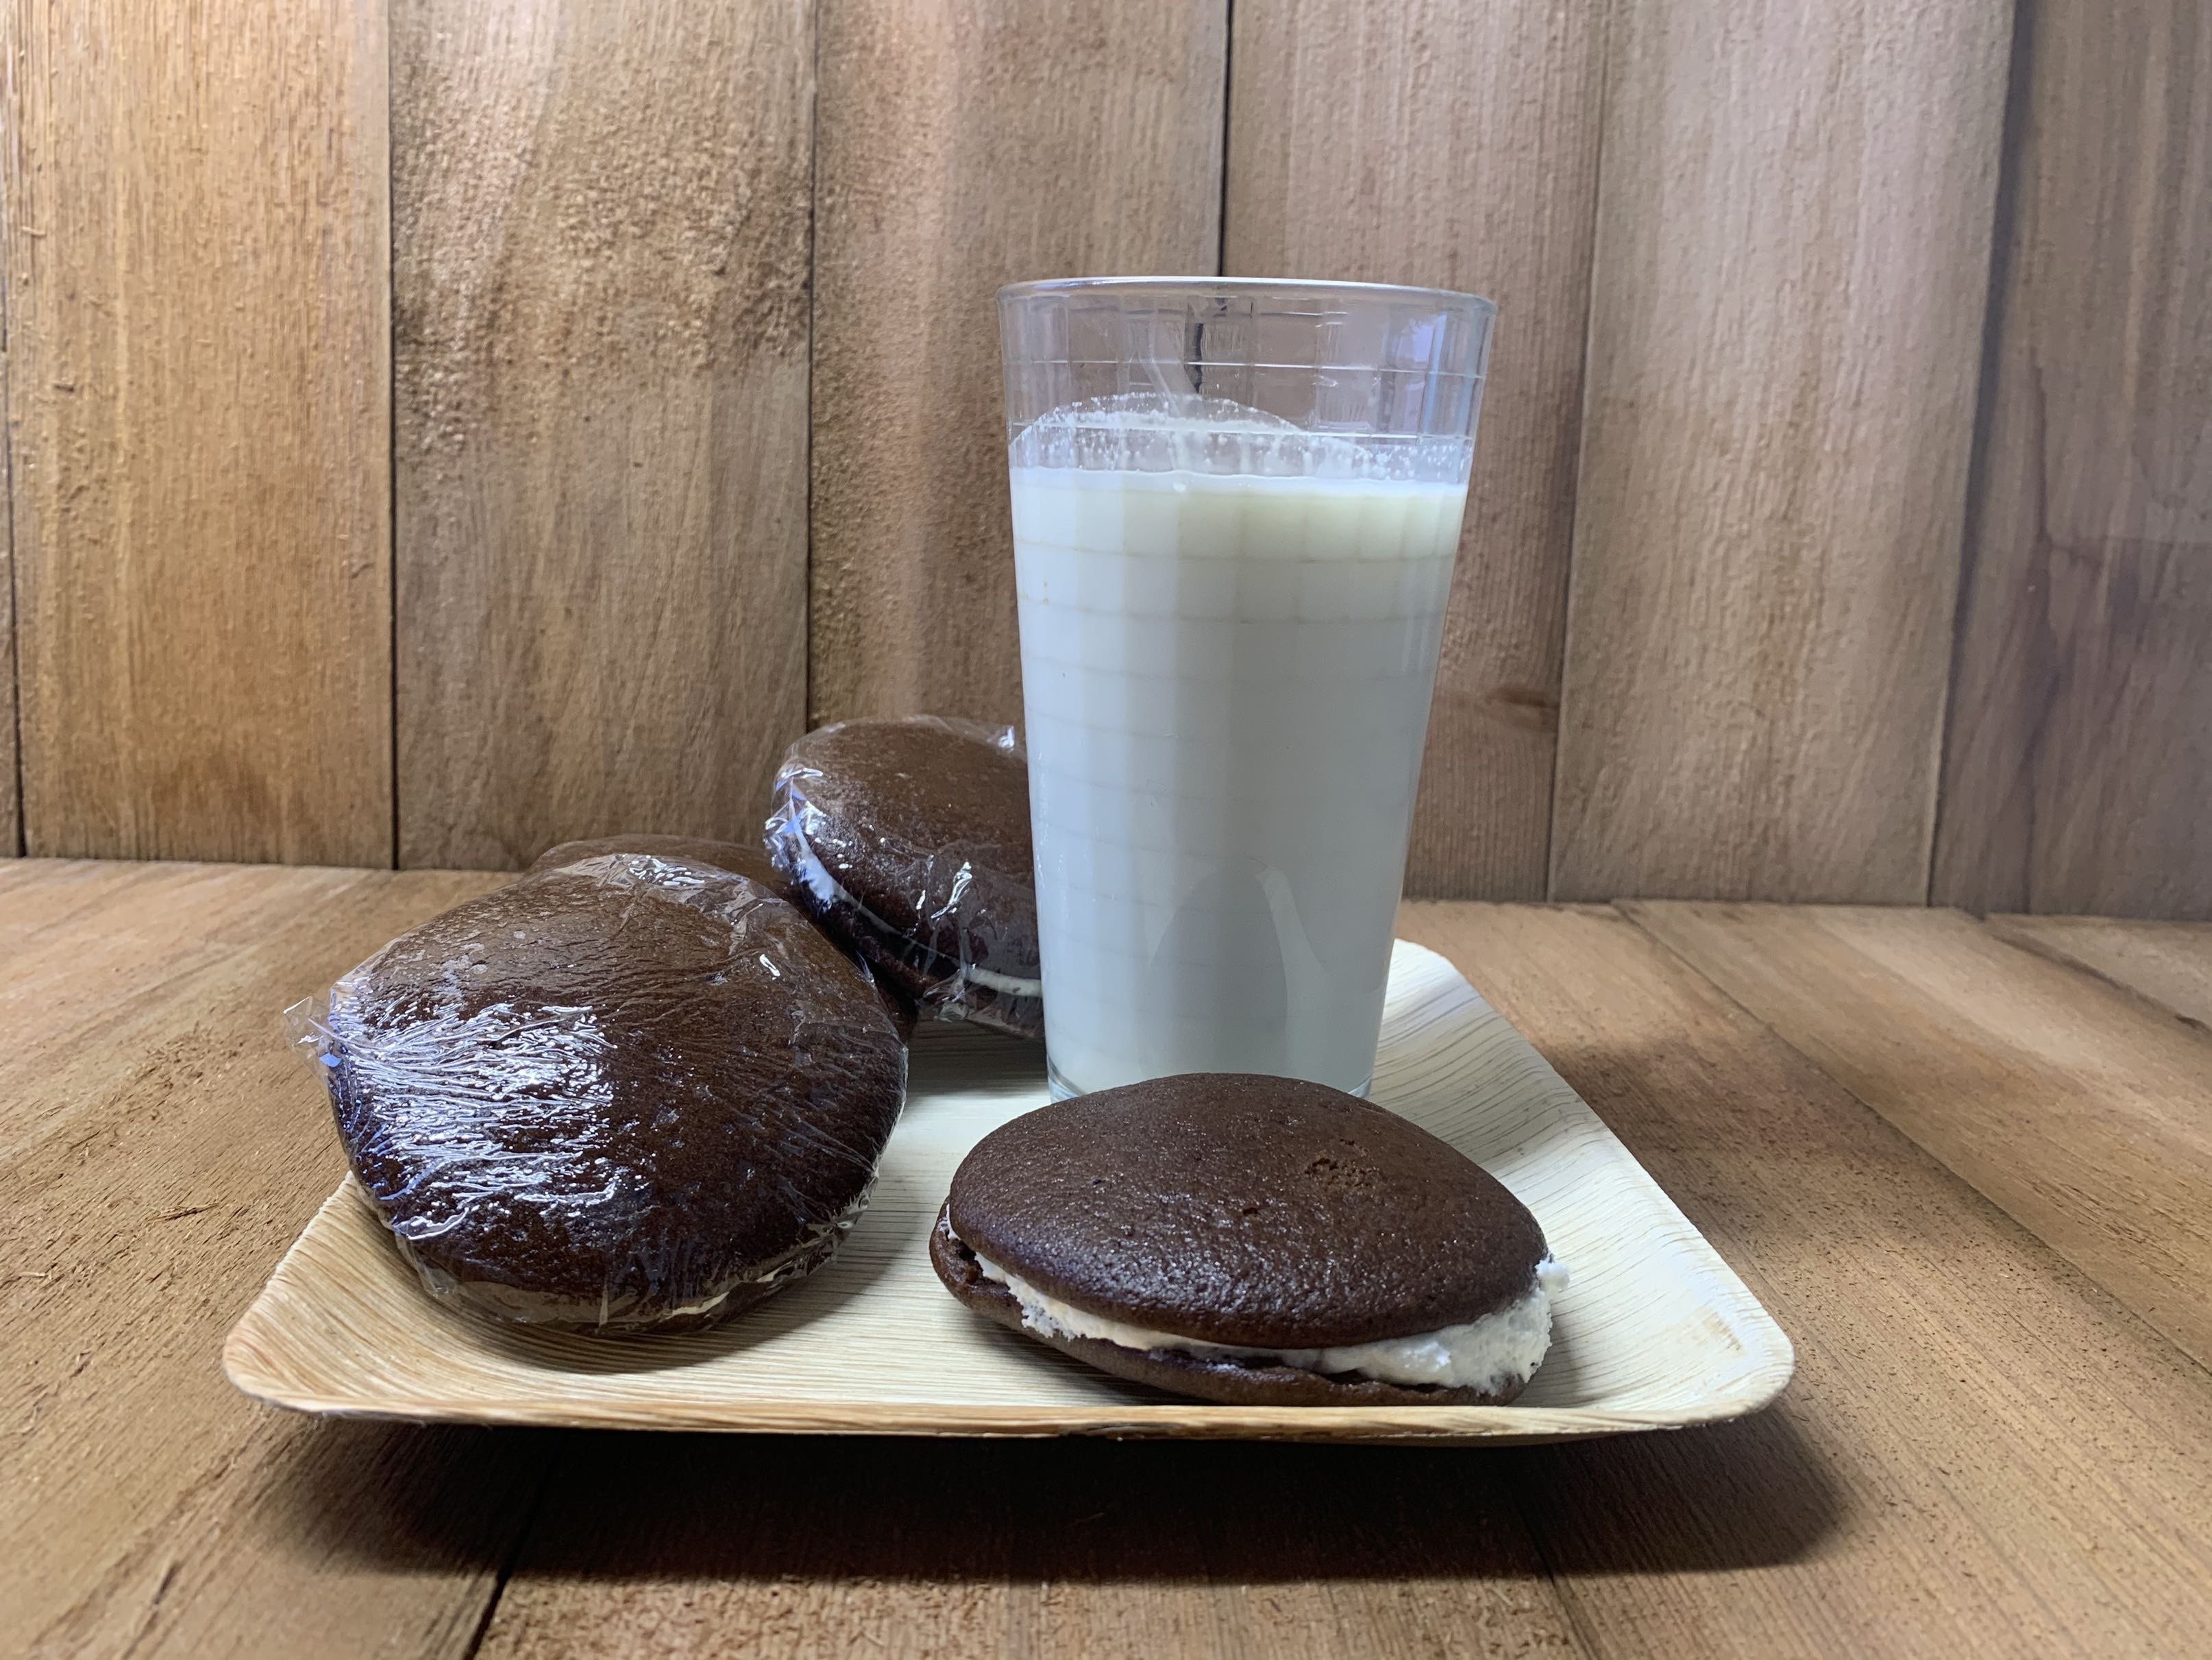 Whoopie Pie 101 - The Name, the Filling, Some History, and a Recipe